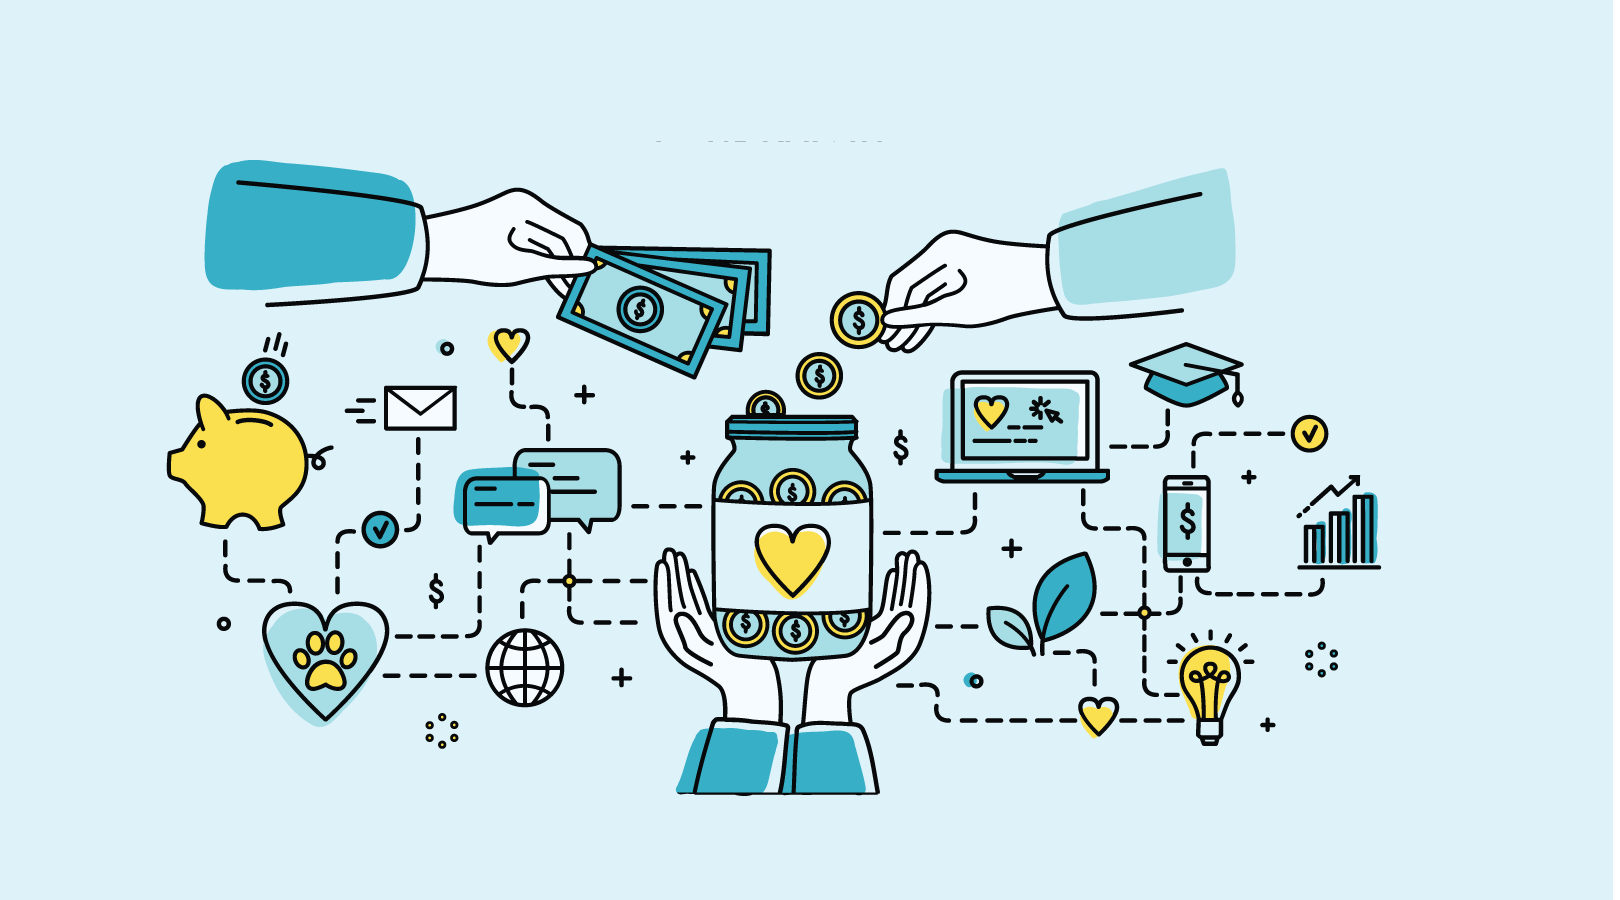 12 Crowdfunding Mistakes Startups Make (and How to Avoid Them)